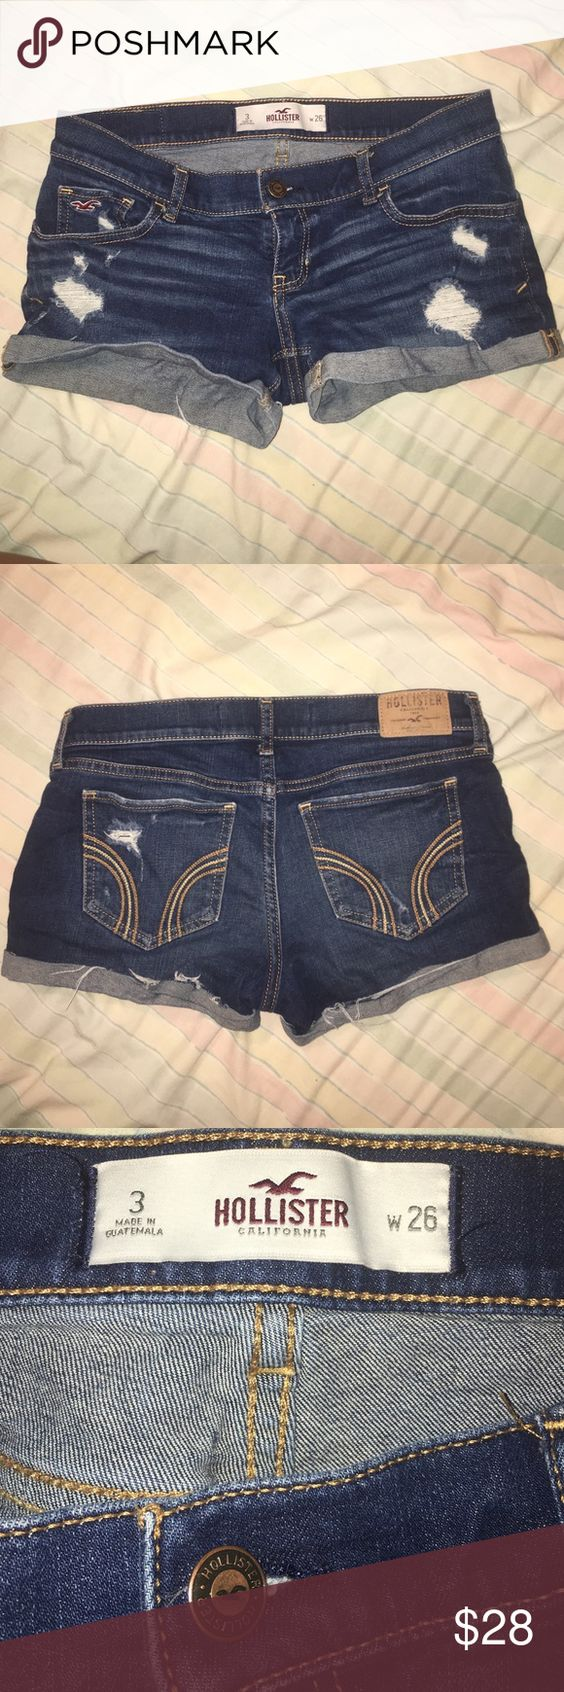 Hollister jeans Dark wash hollister Jean shorts size 3 worn a few times in great condition! Hollister Shorts